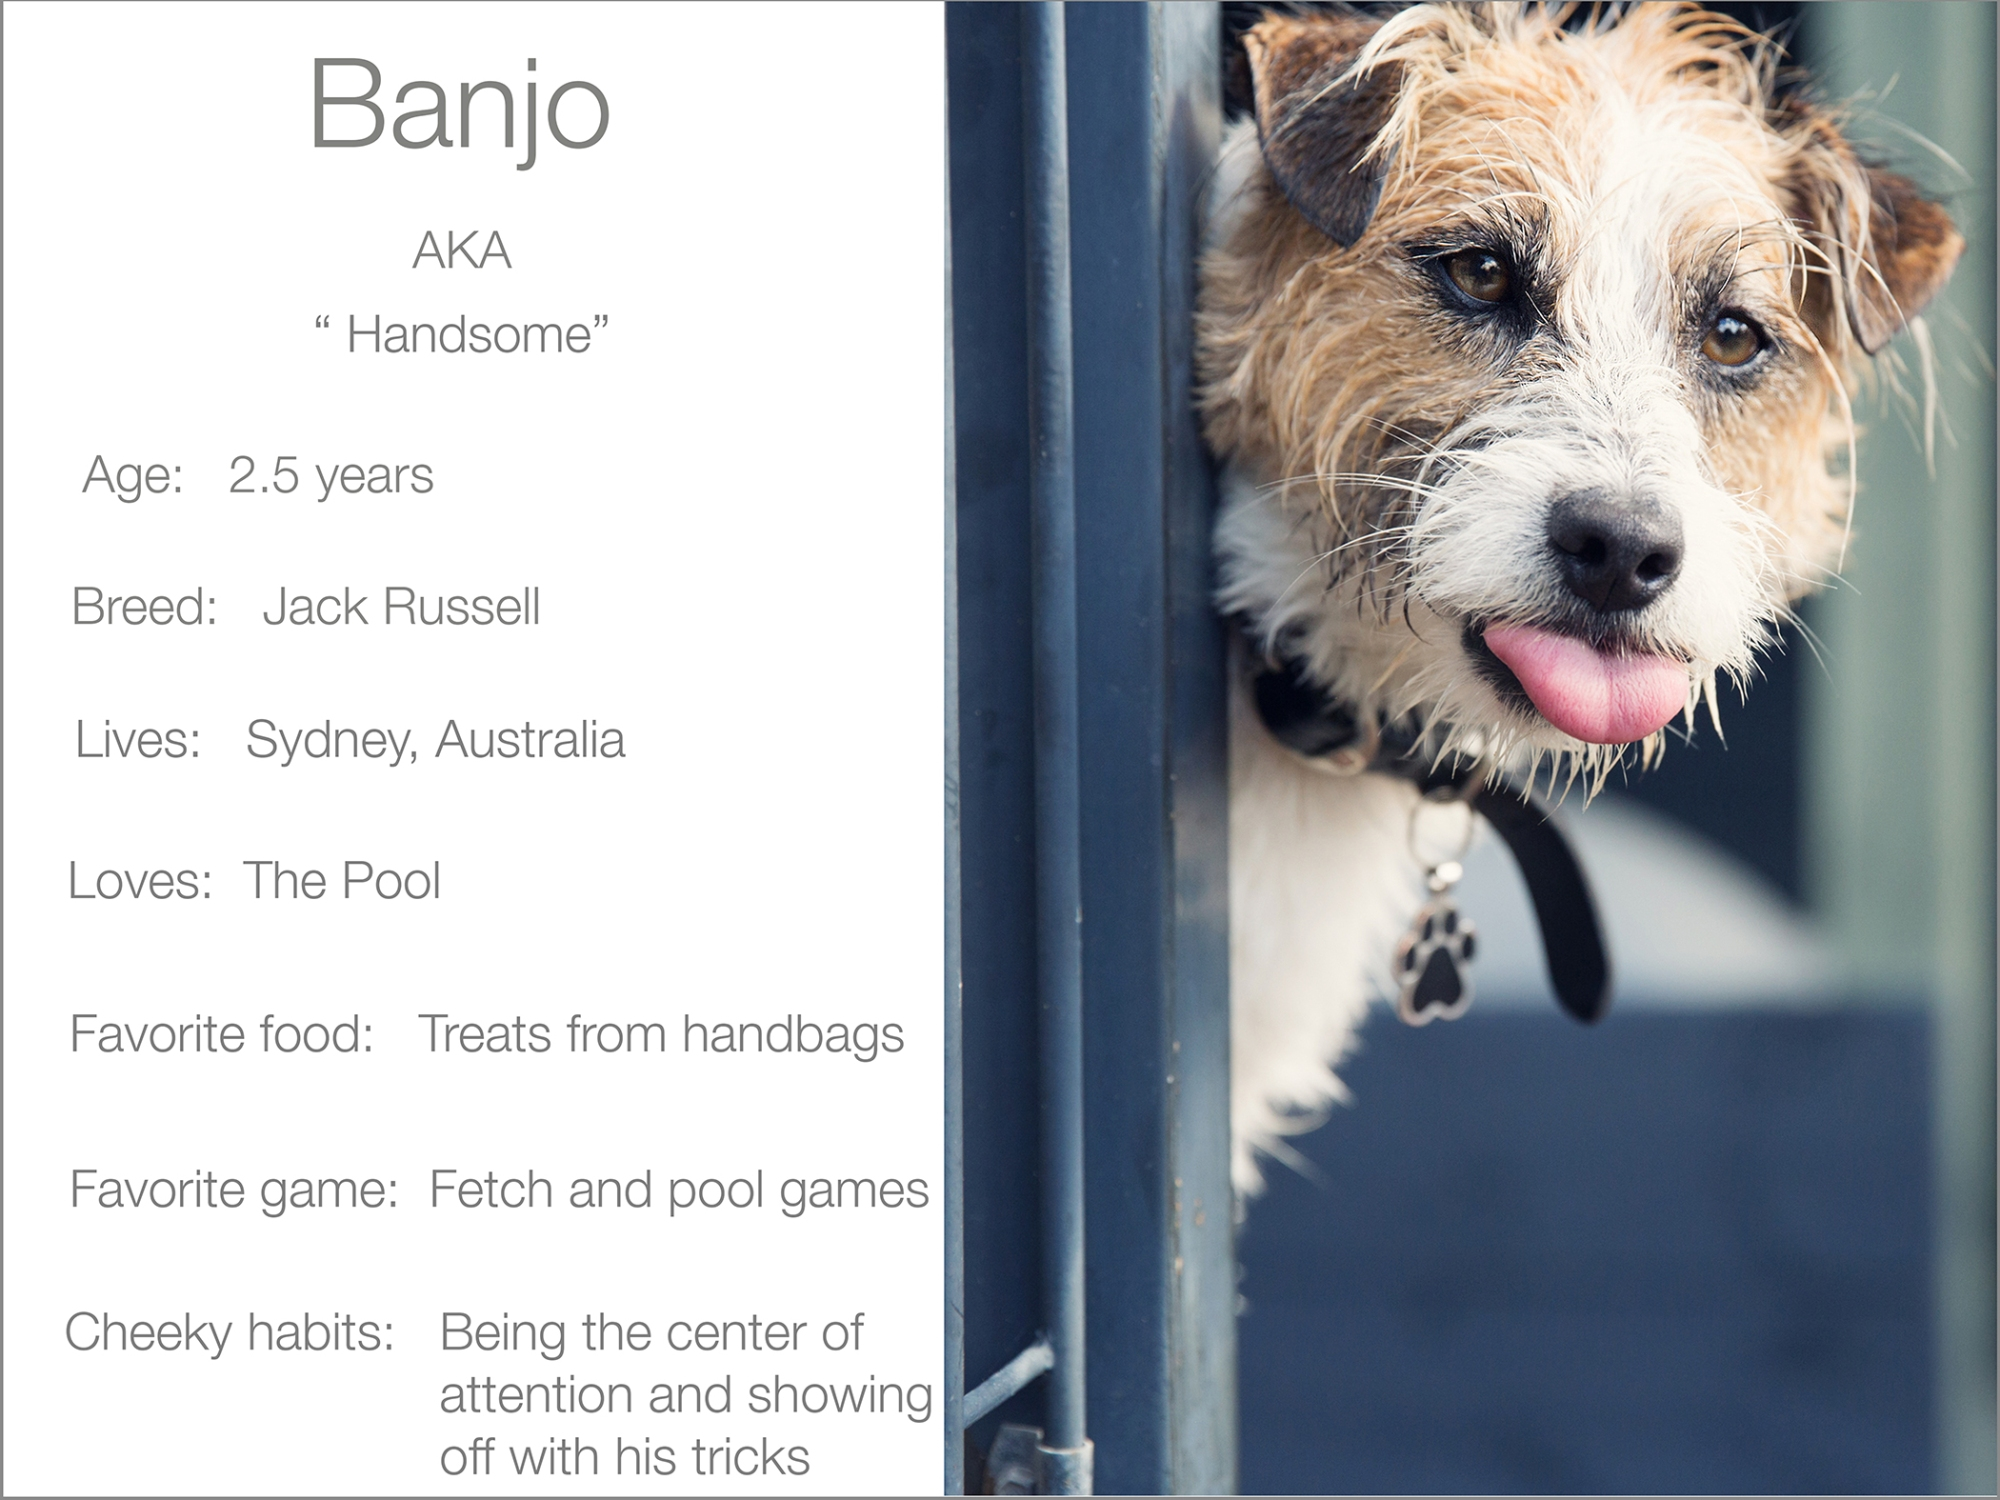 Banjo profile dogs_and_the_city kristie_lee_photographer Charlie.jpg